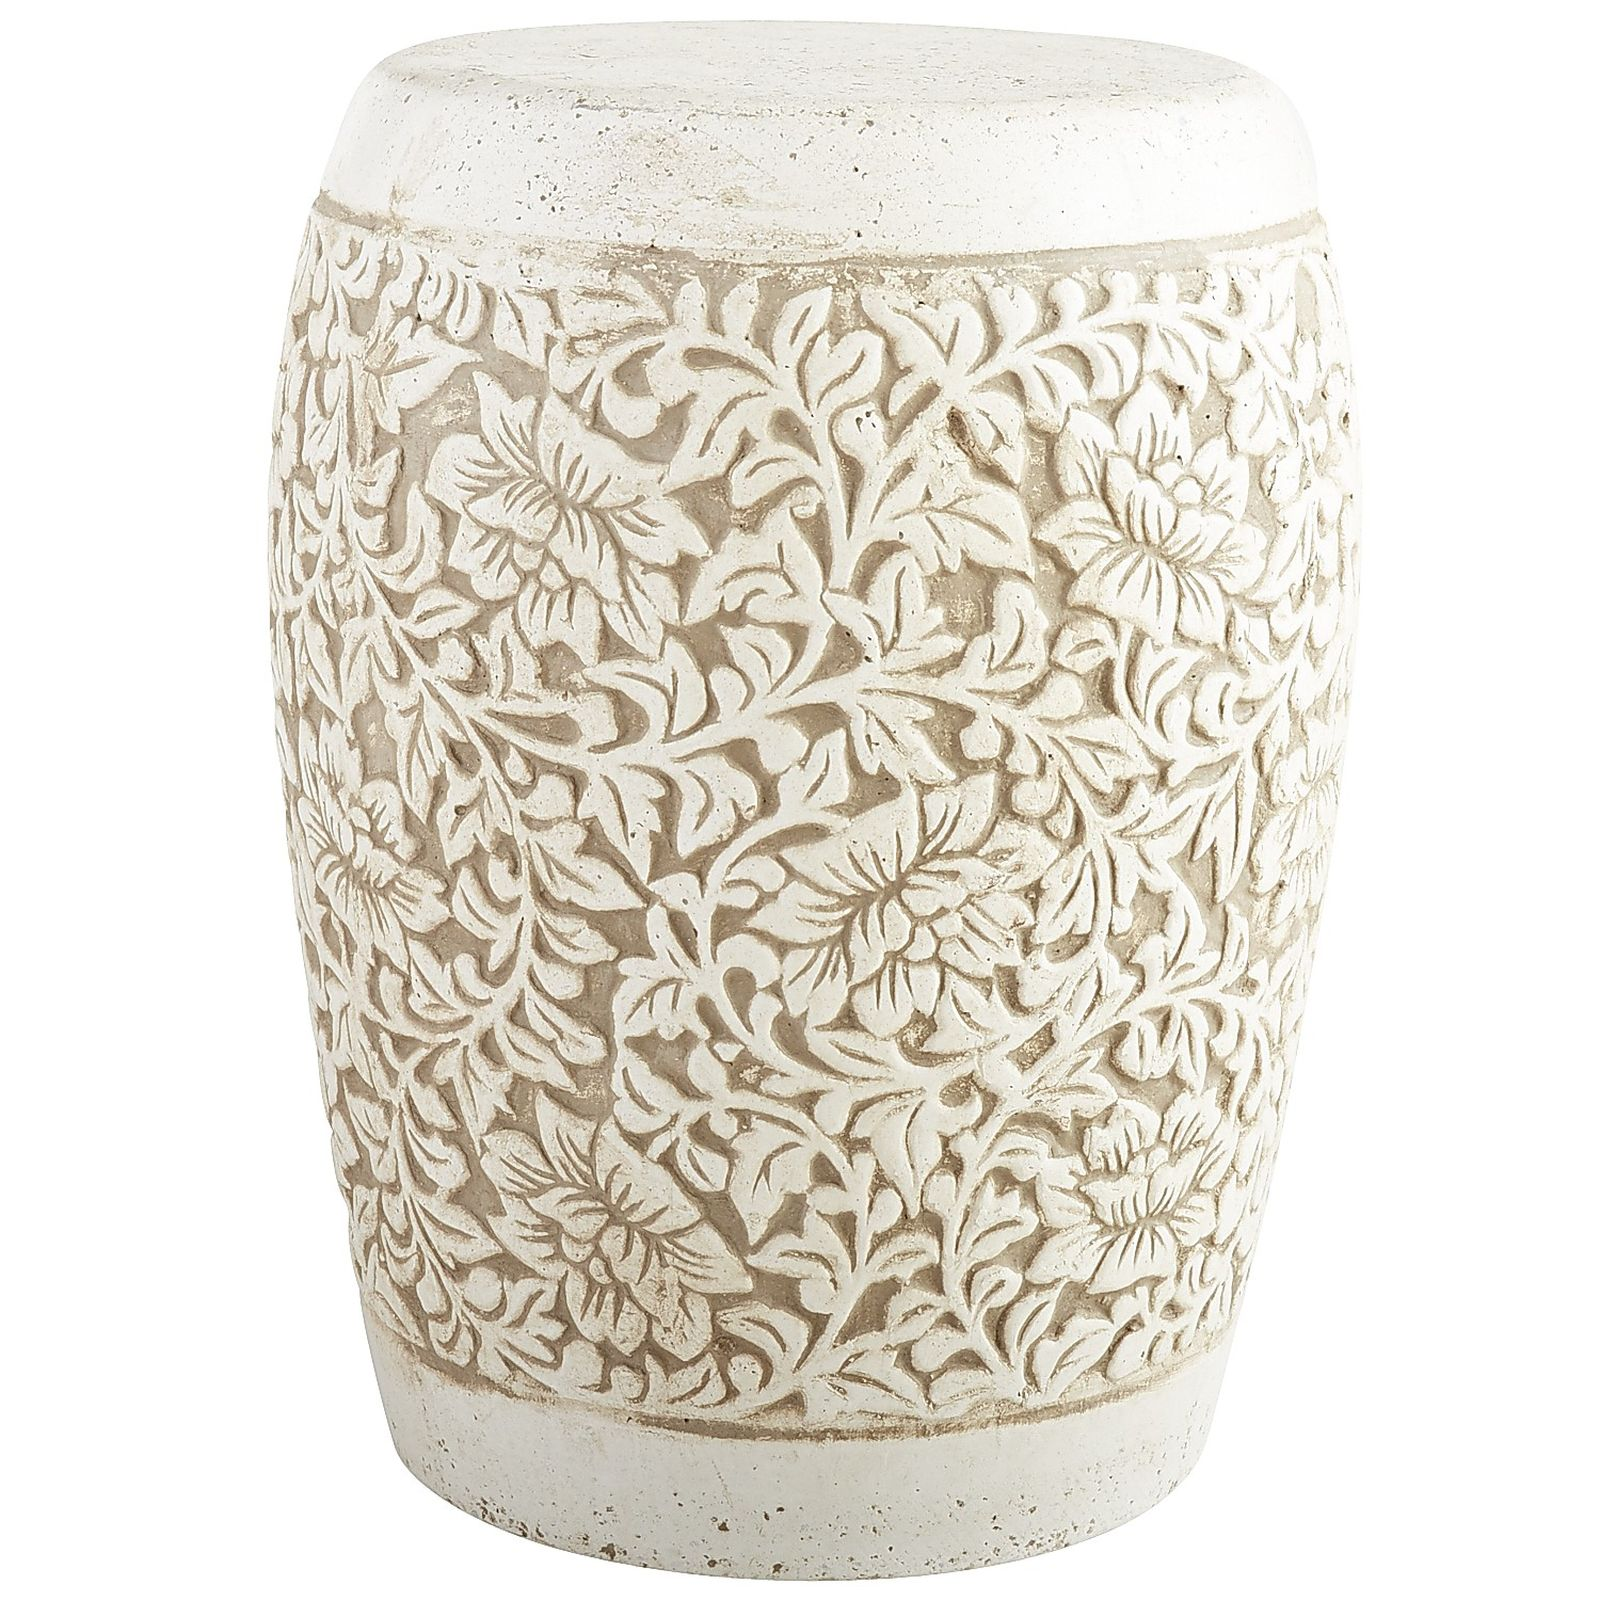 ceramic garden stool. Charming Garden Stool For Decorating Interior Ideas With Ceramic